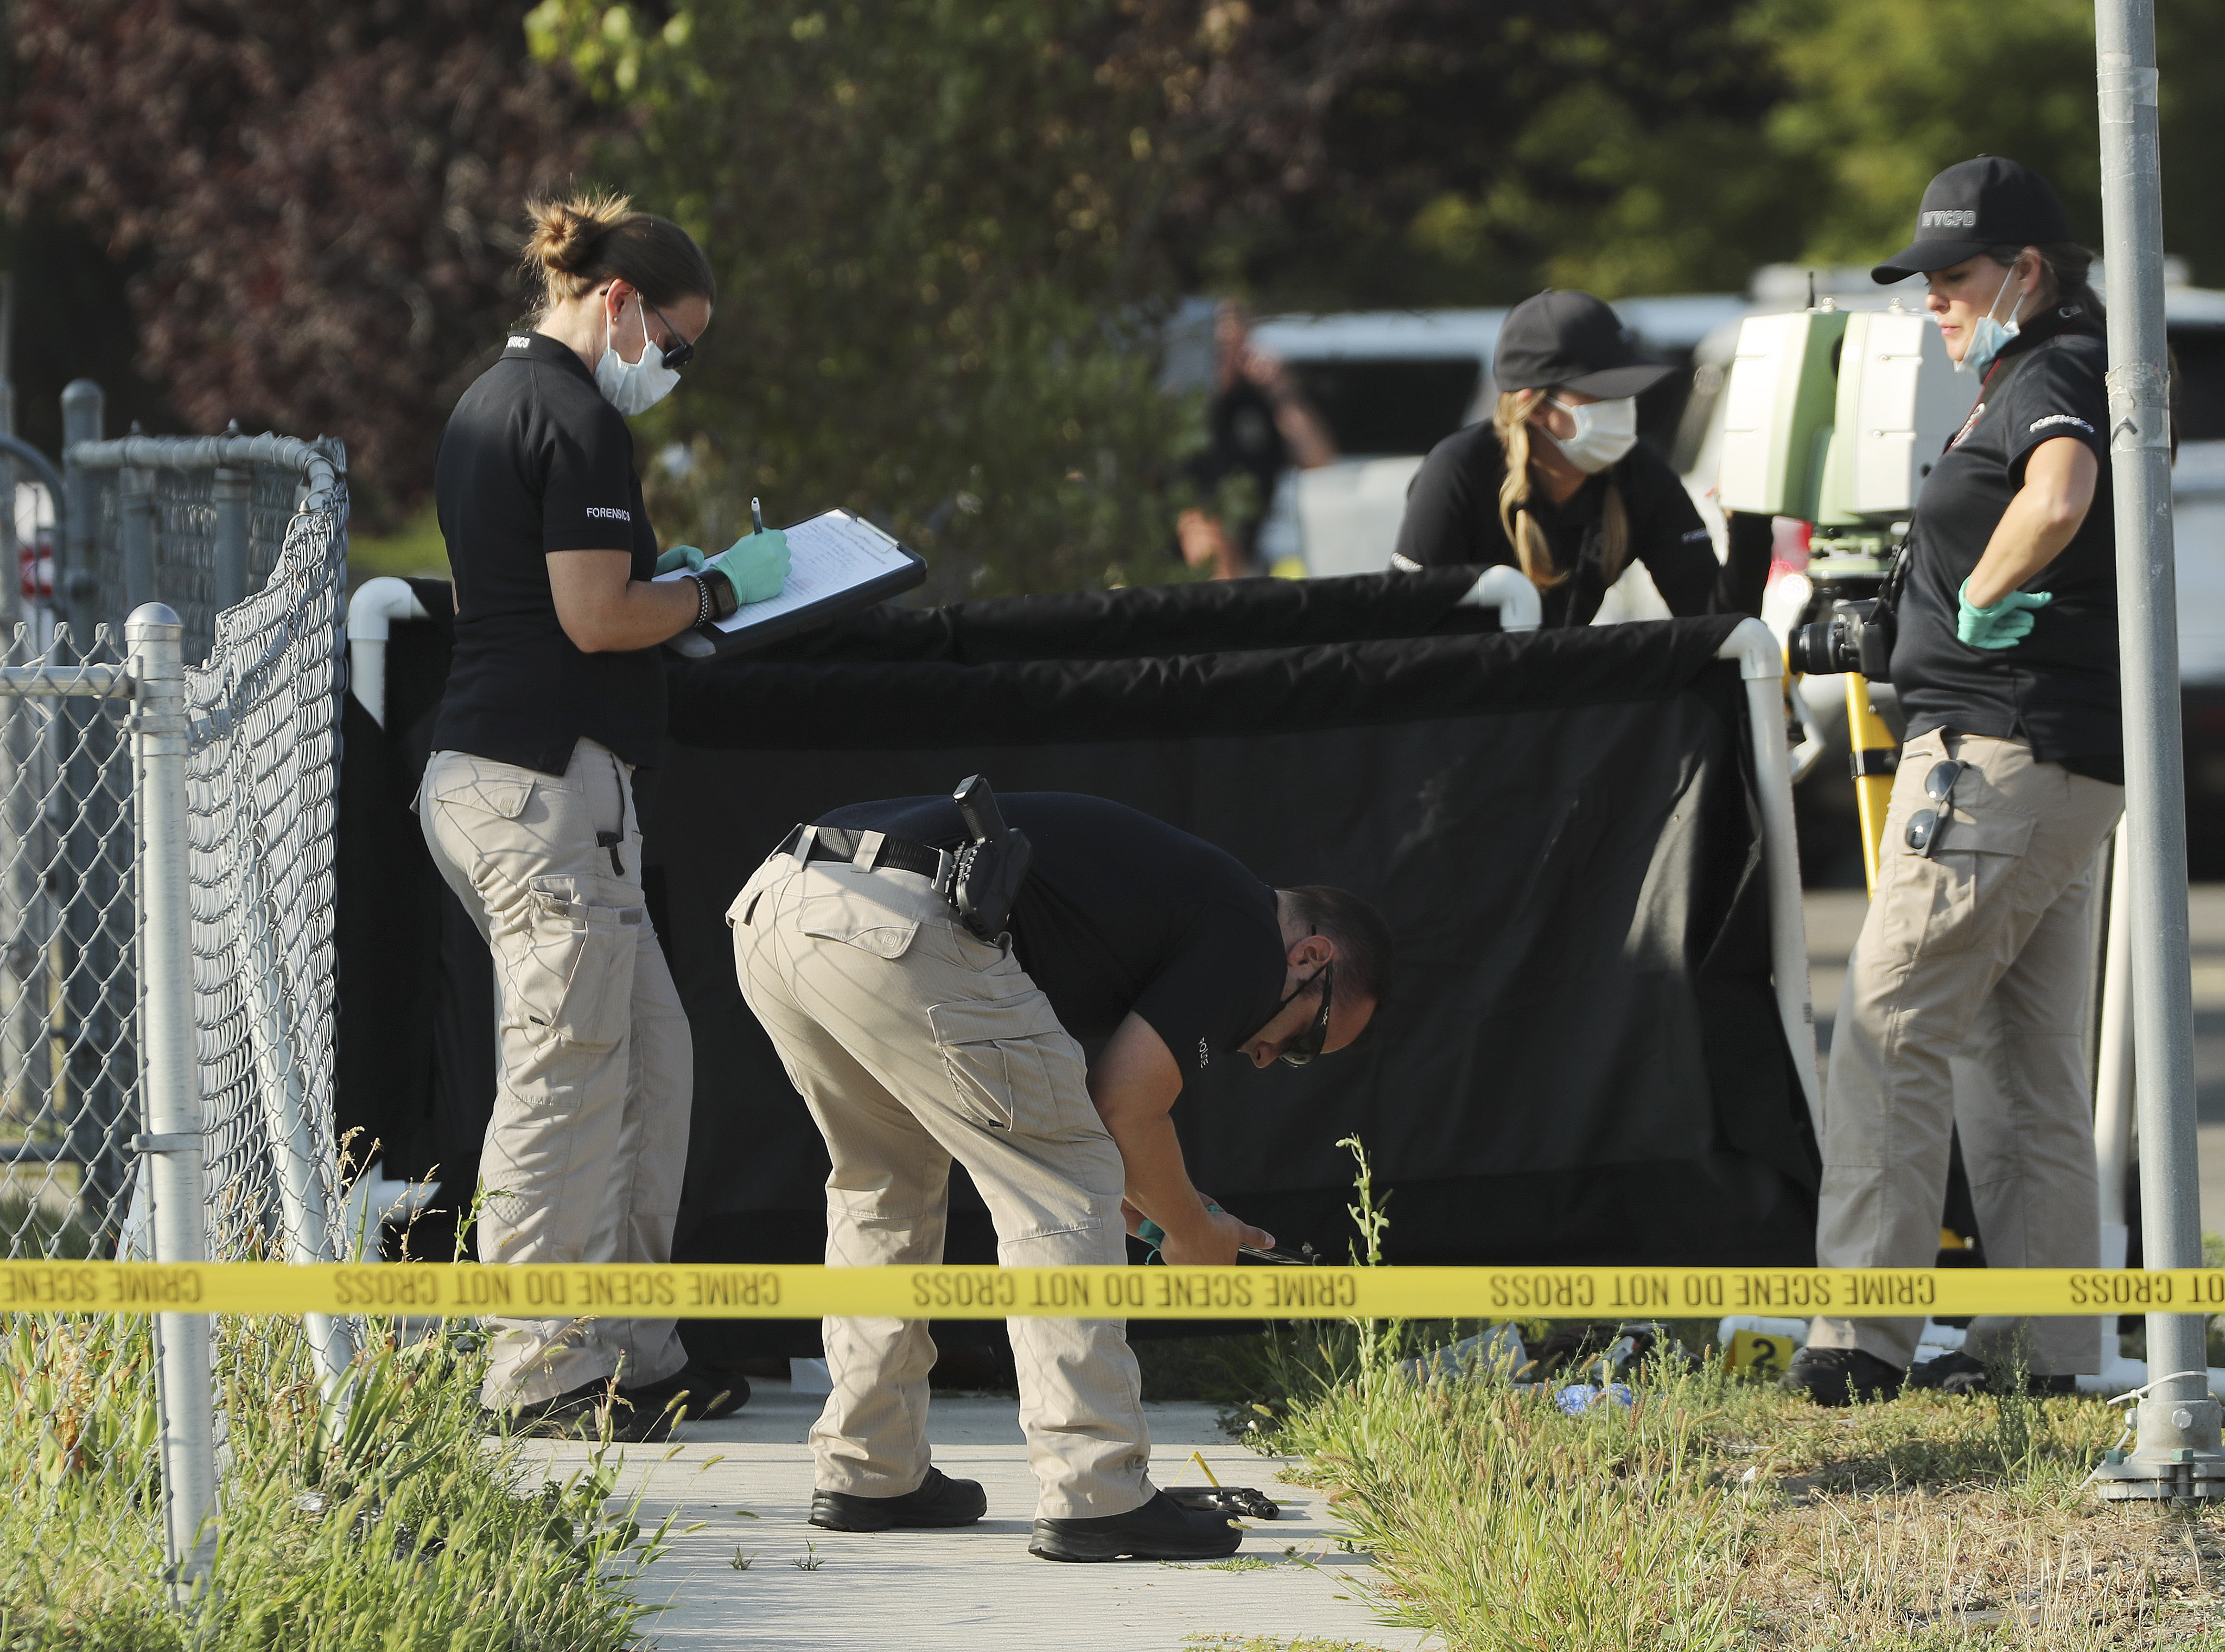 Police investigate an officer involved shooting at 5400 S 5400 W. in Kearns on Tuesday, Aug. 4, 2020.